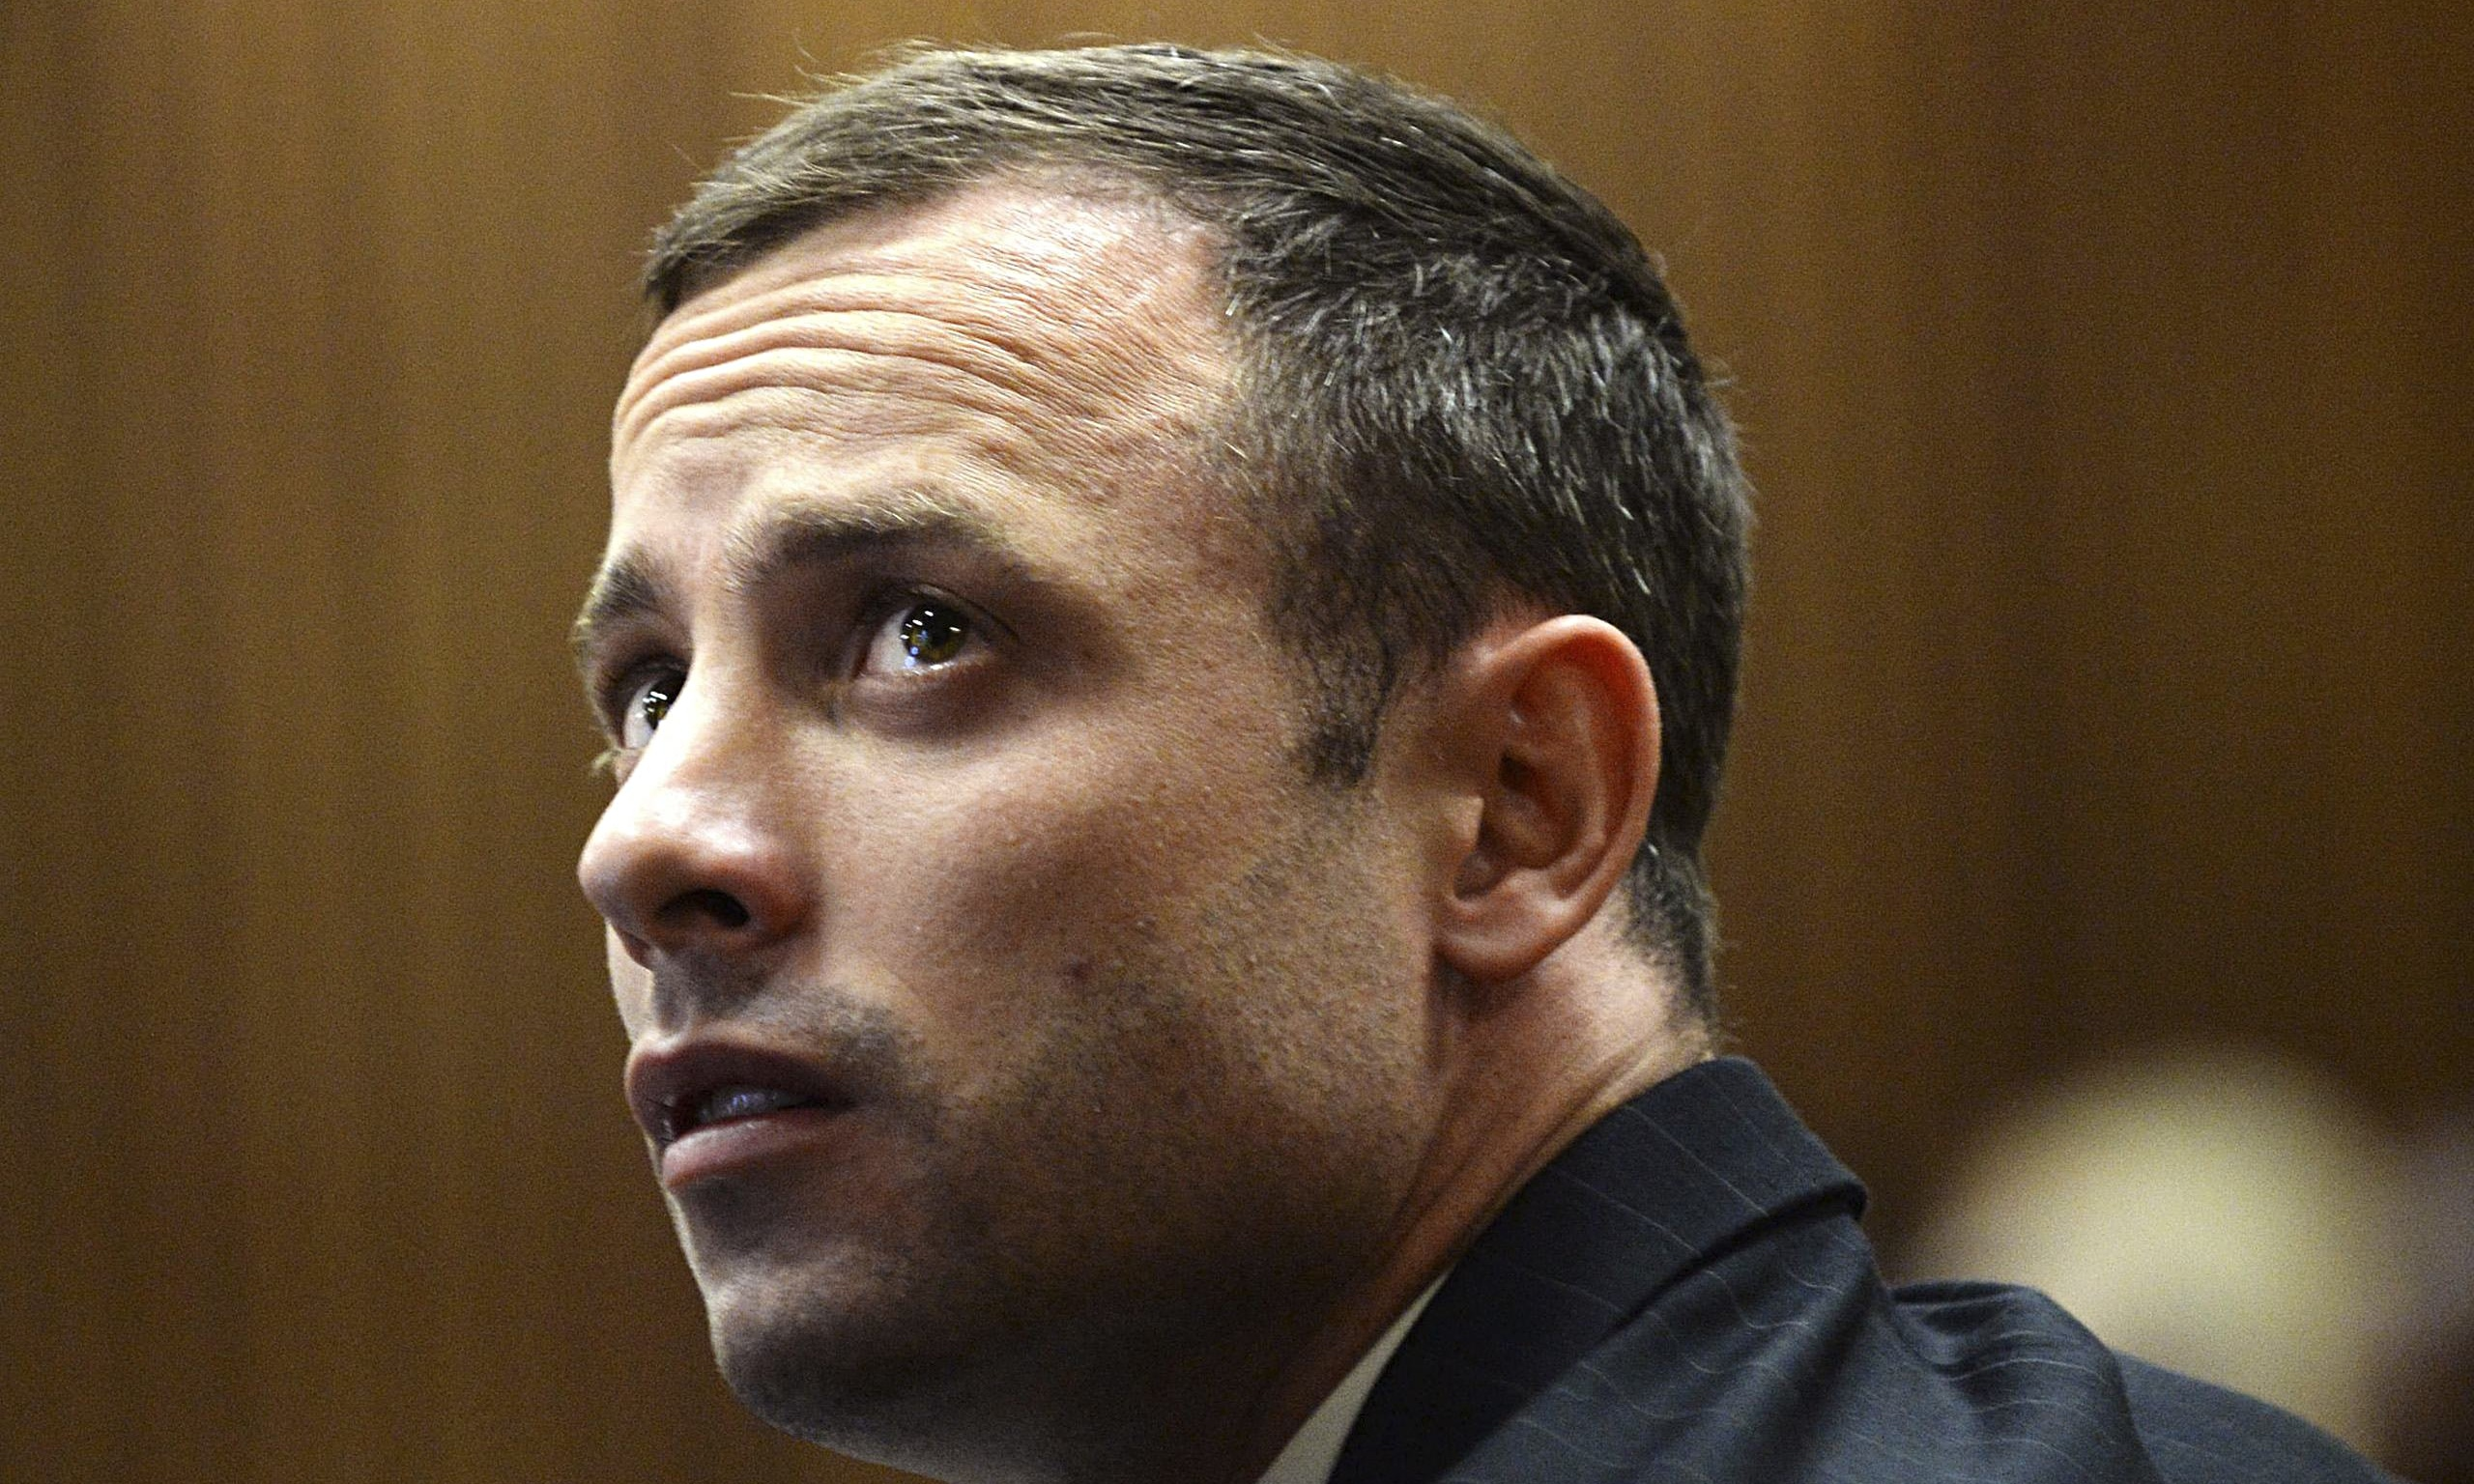 On Aaron Hernandez The Role Of A Leagues  work furthermore Oscar Pistorius New Crime Scene Pics also Oscar Pistorius Breaks Down Second Day Murder Trial together with Popular Culture Musings together with Detailed Images Of Reeva Steenk. on details of pistorius shooting